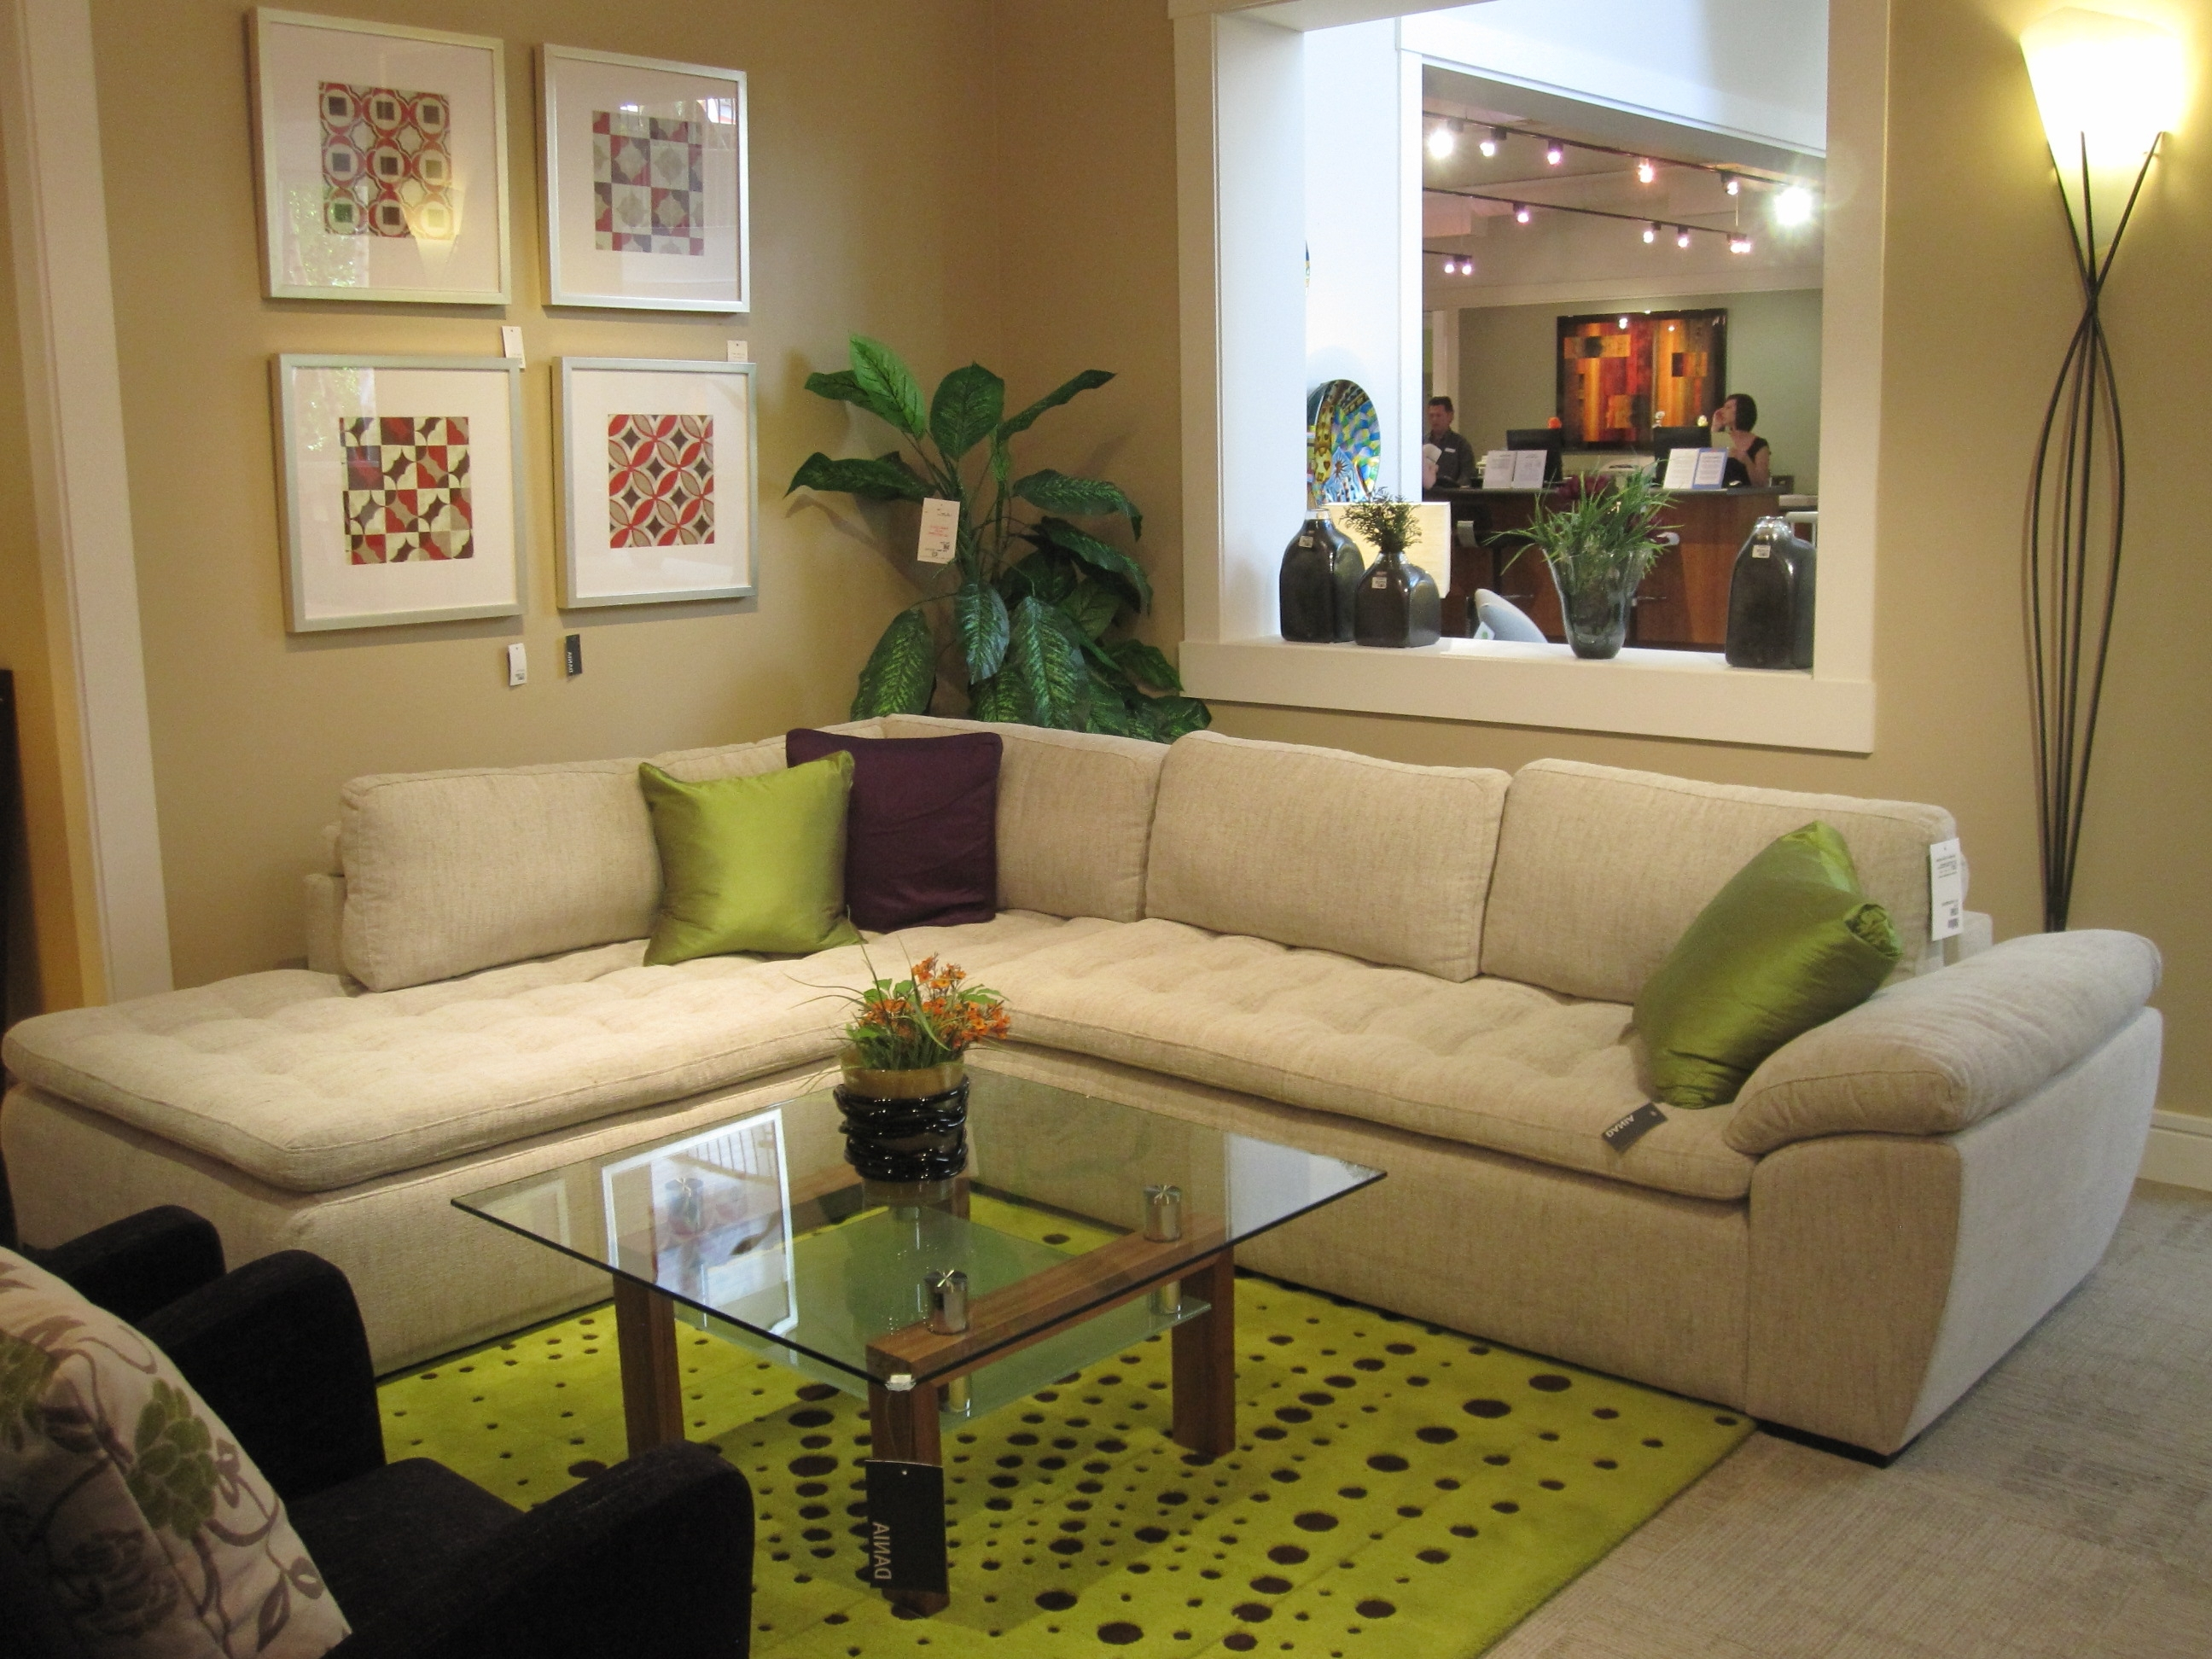 Furniture Shopping July 2011 Sectional Pertaining To 2019 Dania Sectional Sofas (View 17 of 20)